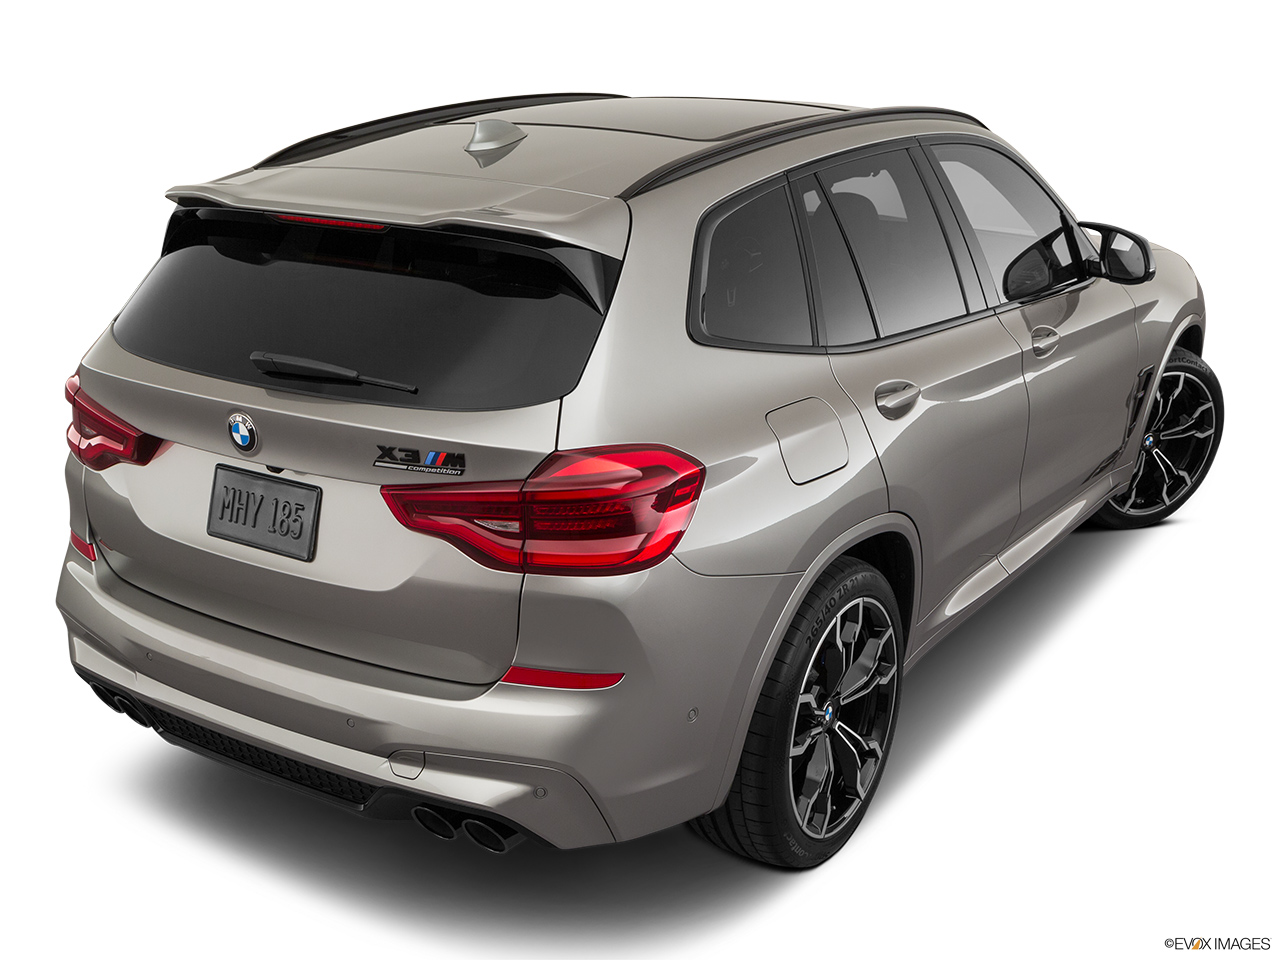 2020 BMW X3 M Competition Rear 3/4 angle view.